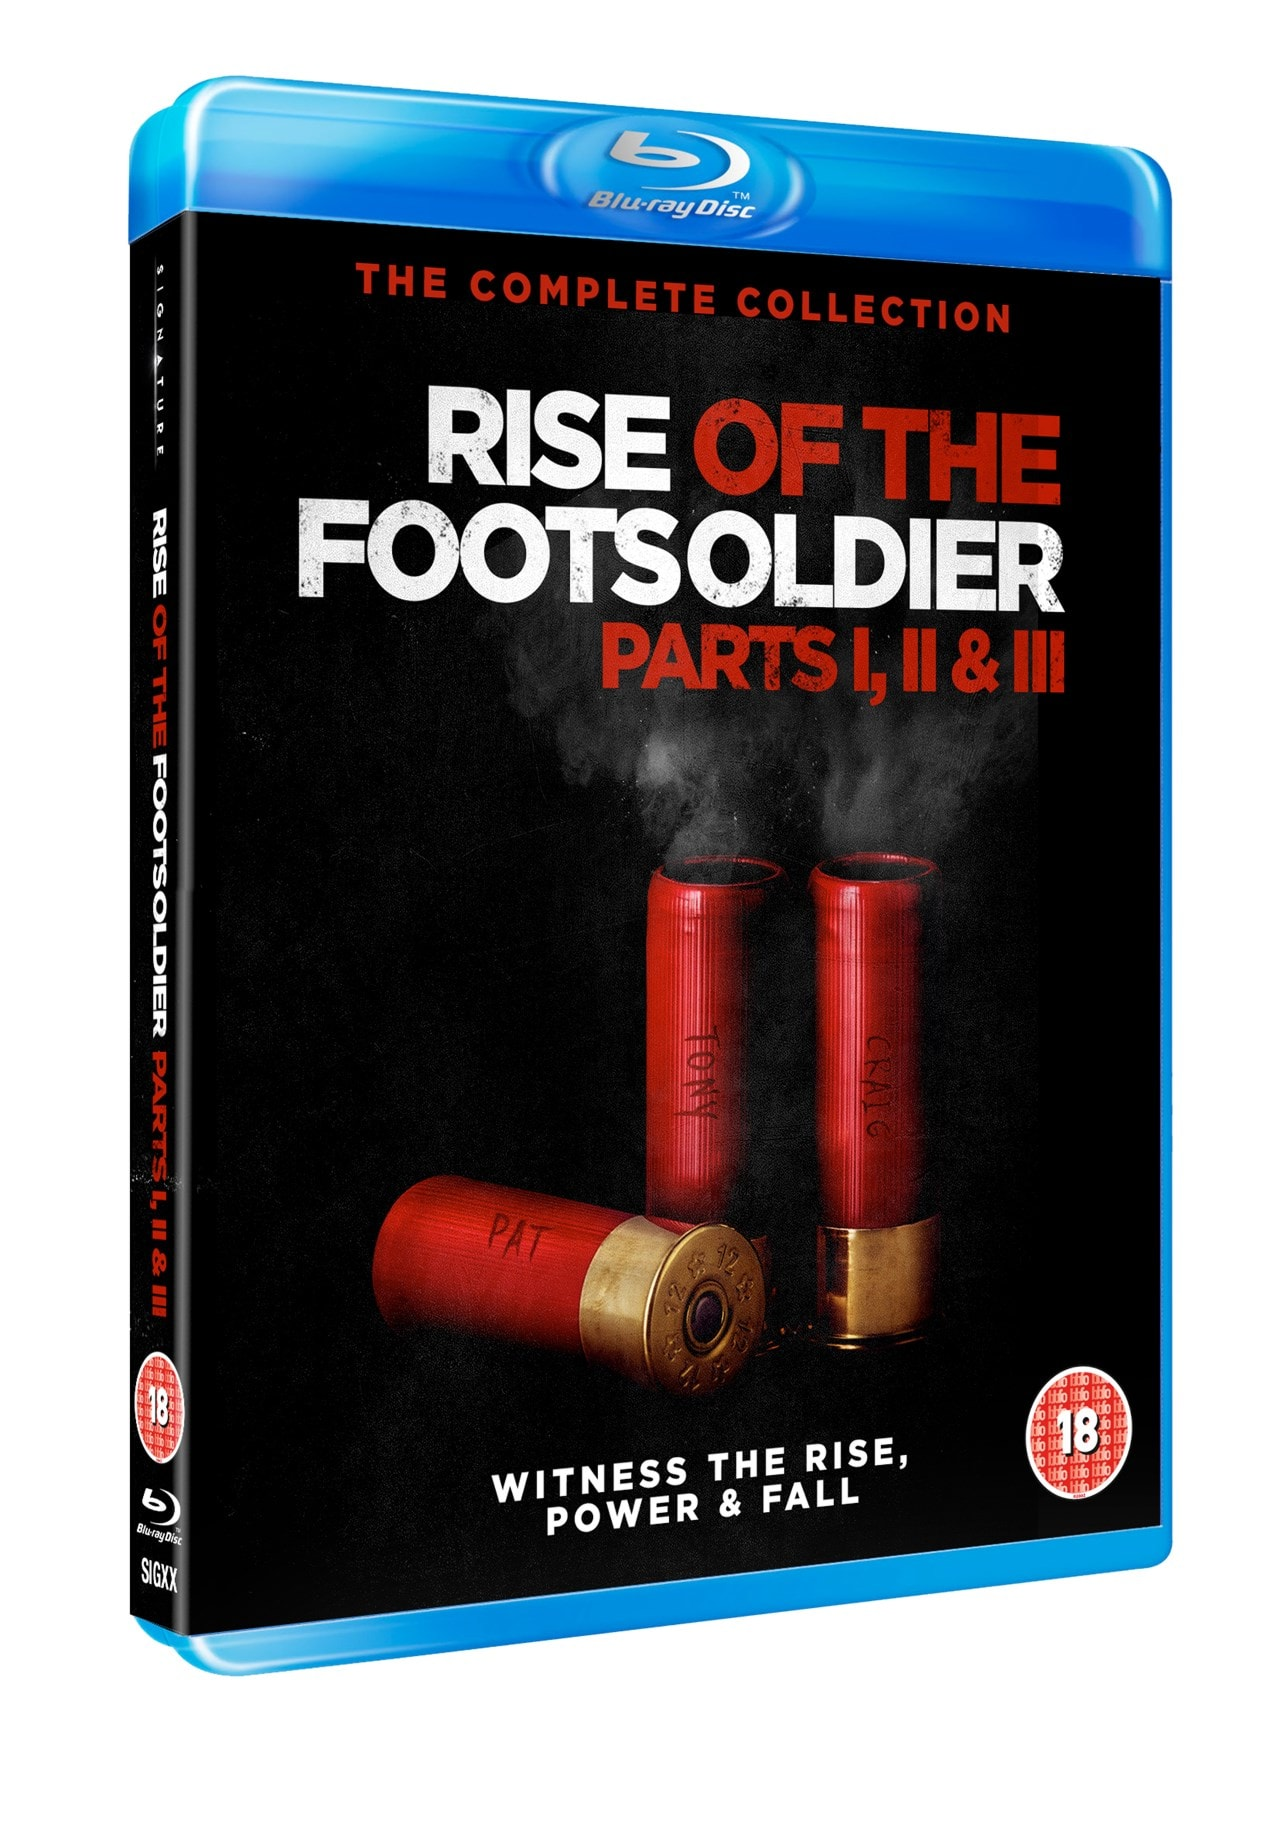 Footsoldier Collection - 2